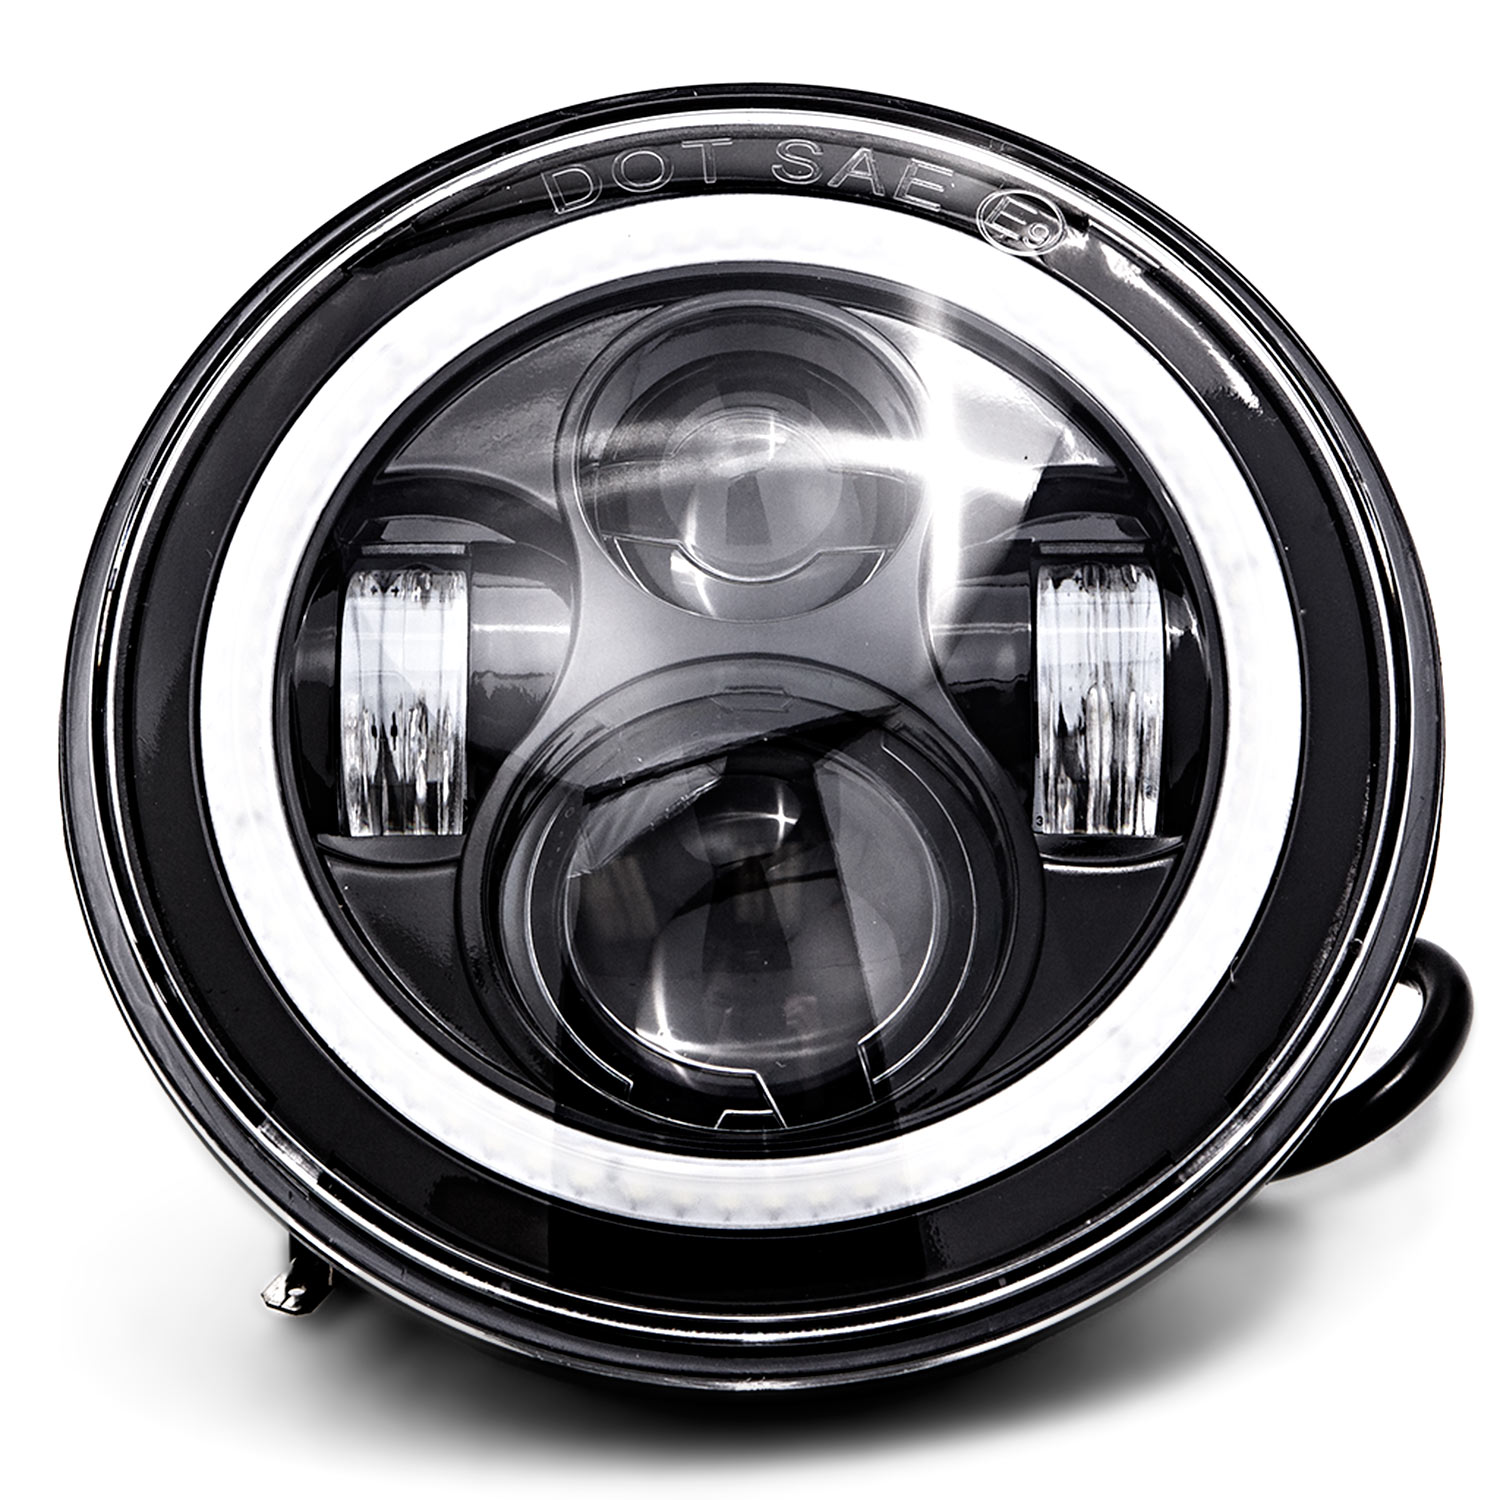 2011-2013 Jeep Grand Cherokee Krator Pair of 7 Round LED Headlight with High Low Beam for 1997-2016 Jeep Wrangler 2009-2015 Dodge Journey